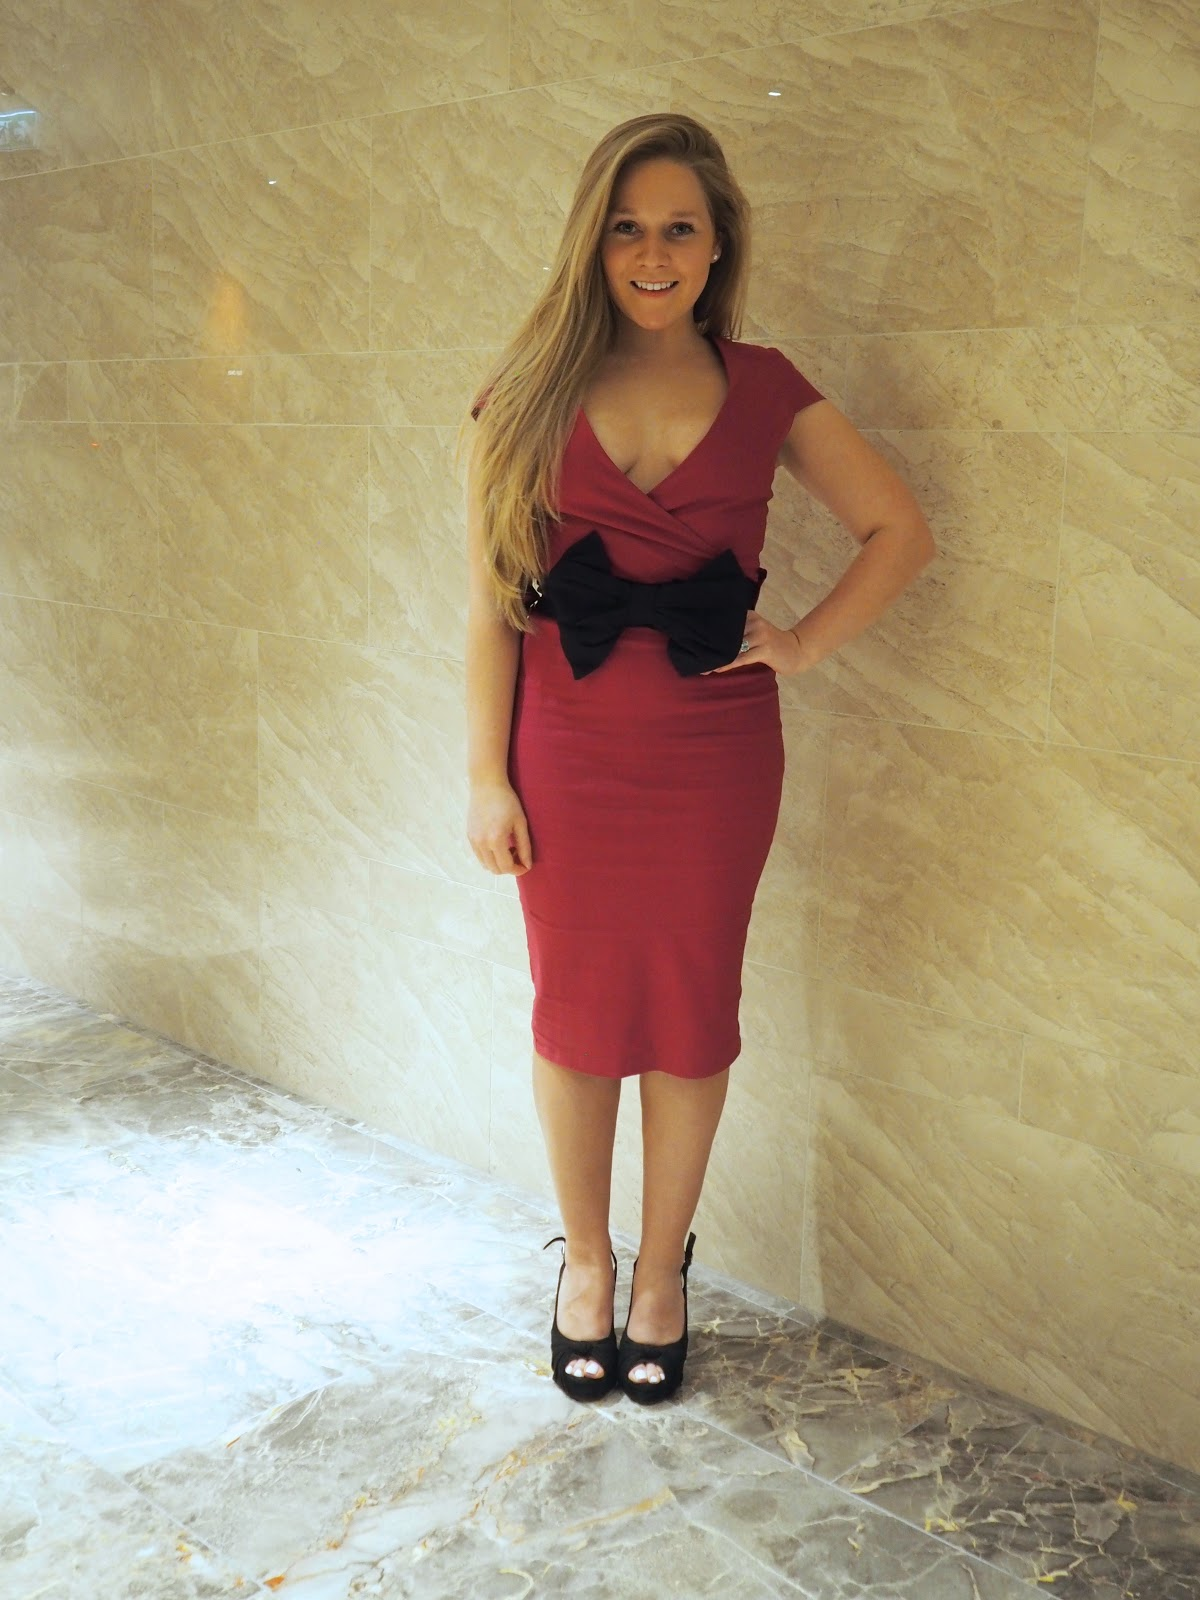 Blonde girl in pink Vesper Dress with bow standing against marble wall and floor